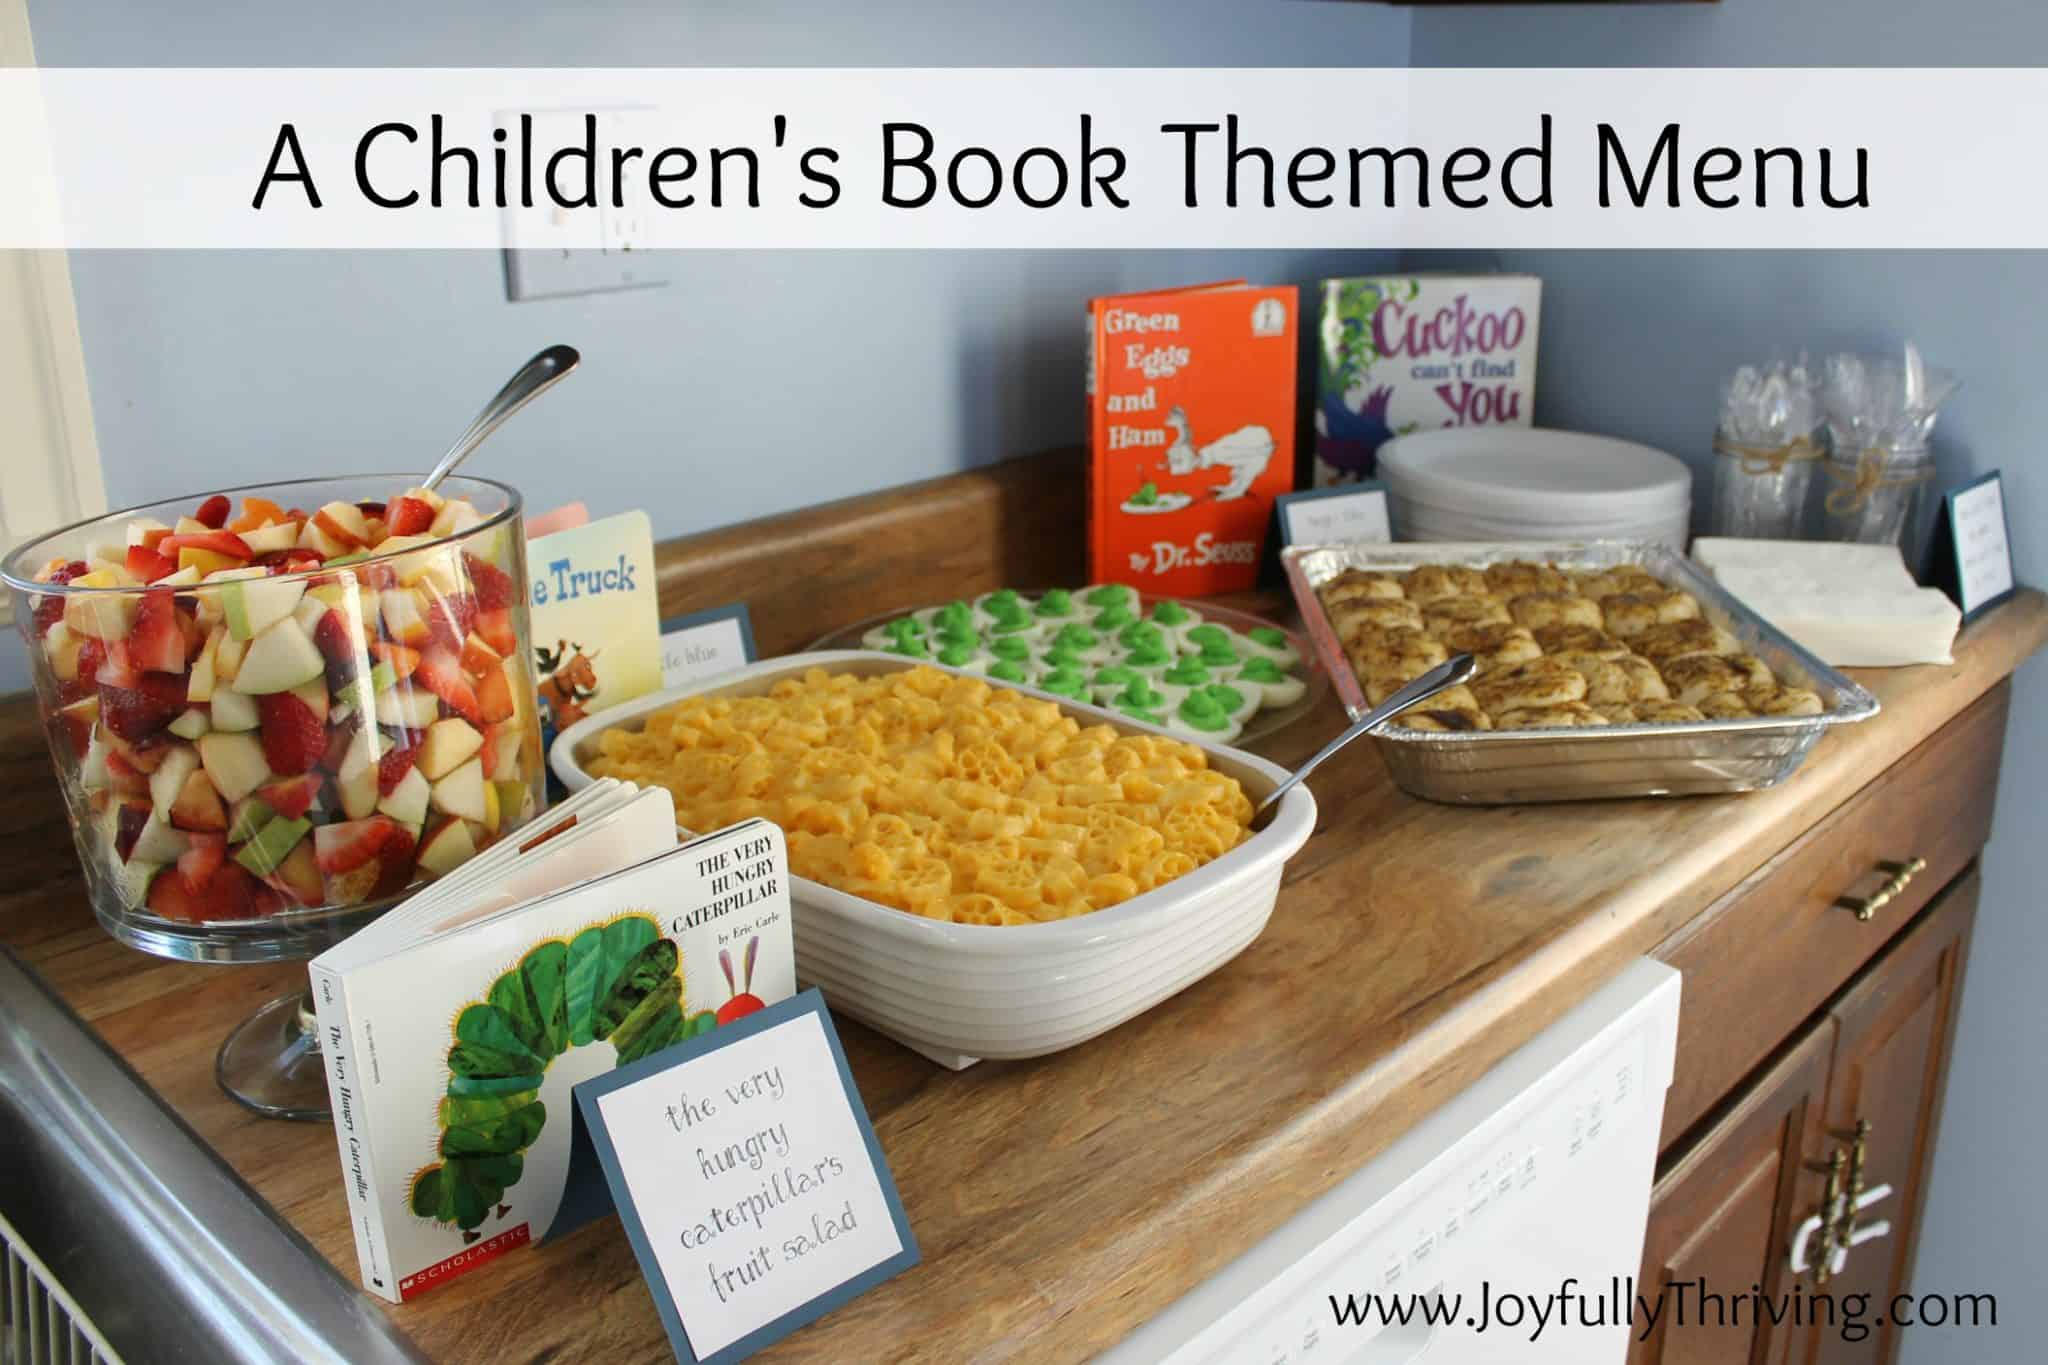 Birthday Party Dinner Menu Ideas Part - 18: A Childrenu0027s Book Themed Menu - Here Is A List Of Classic Childrenu0027s Books  And Foods